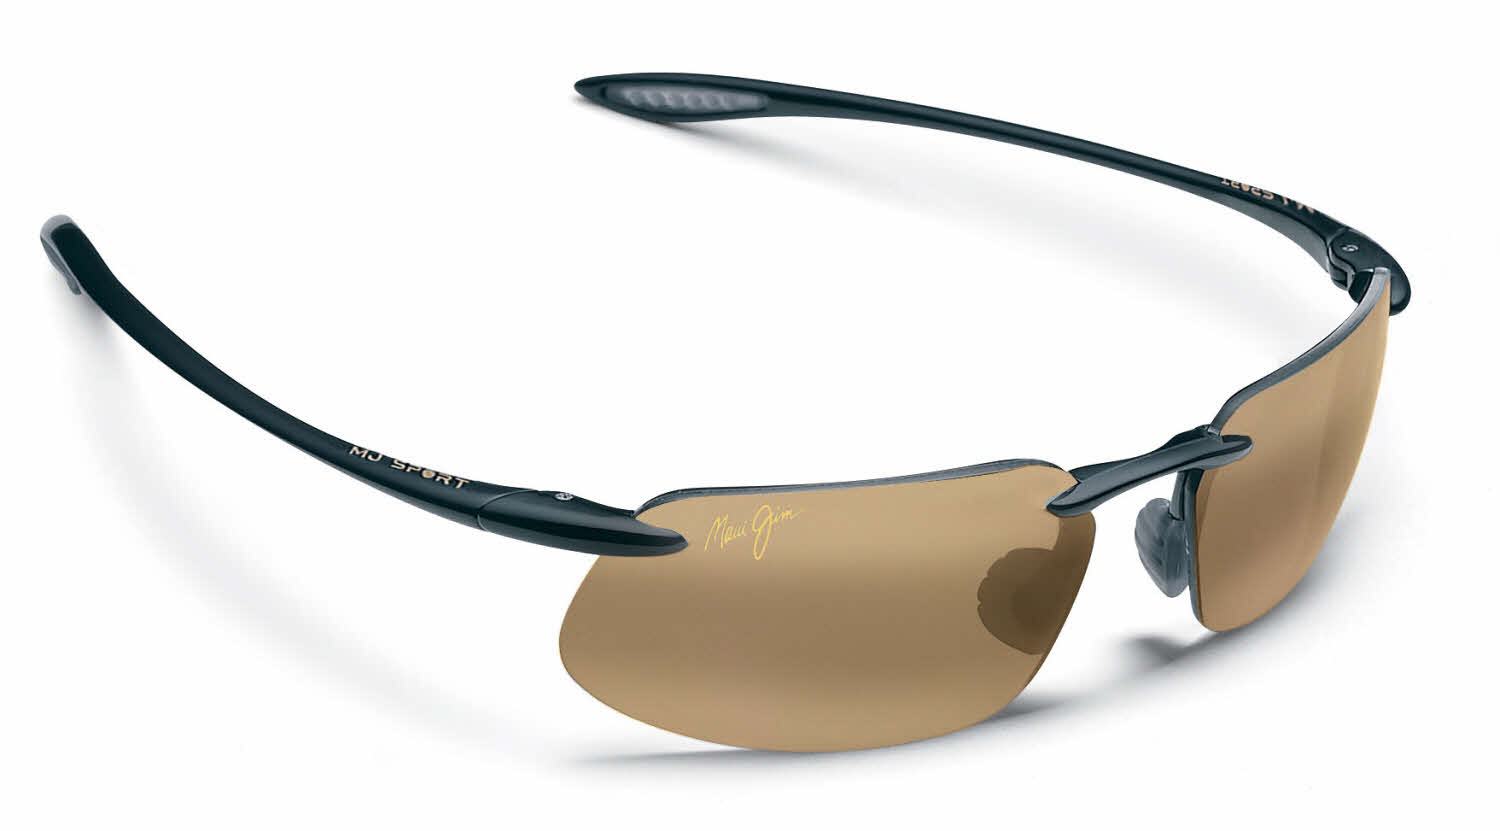 3b2c256f00 Maui Jim Kanaha-909 Prescription Sunglasses